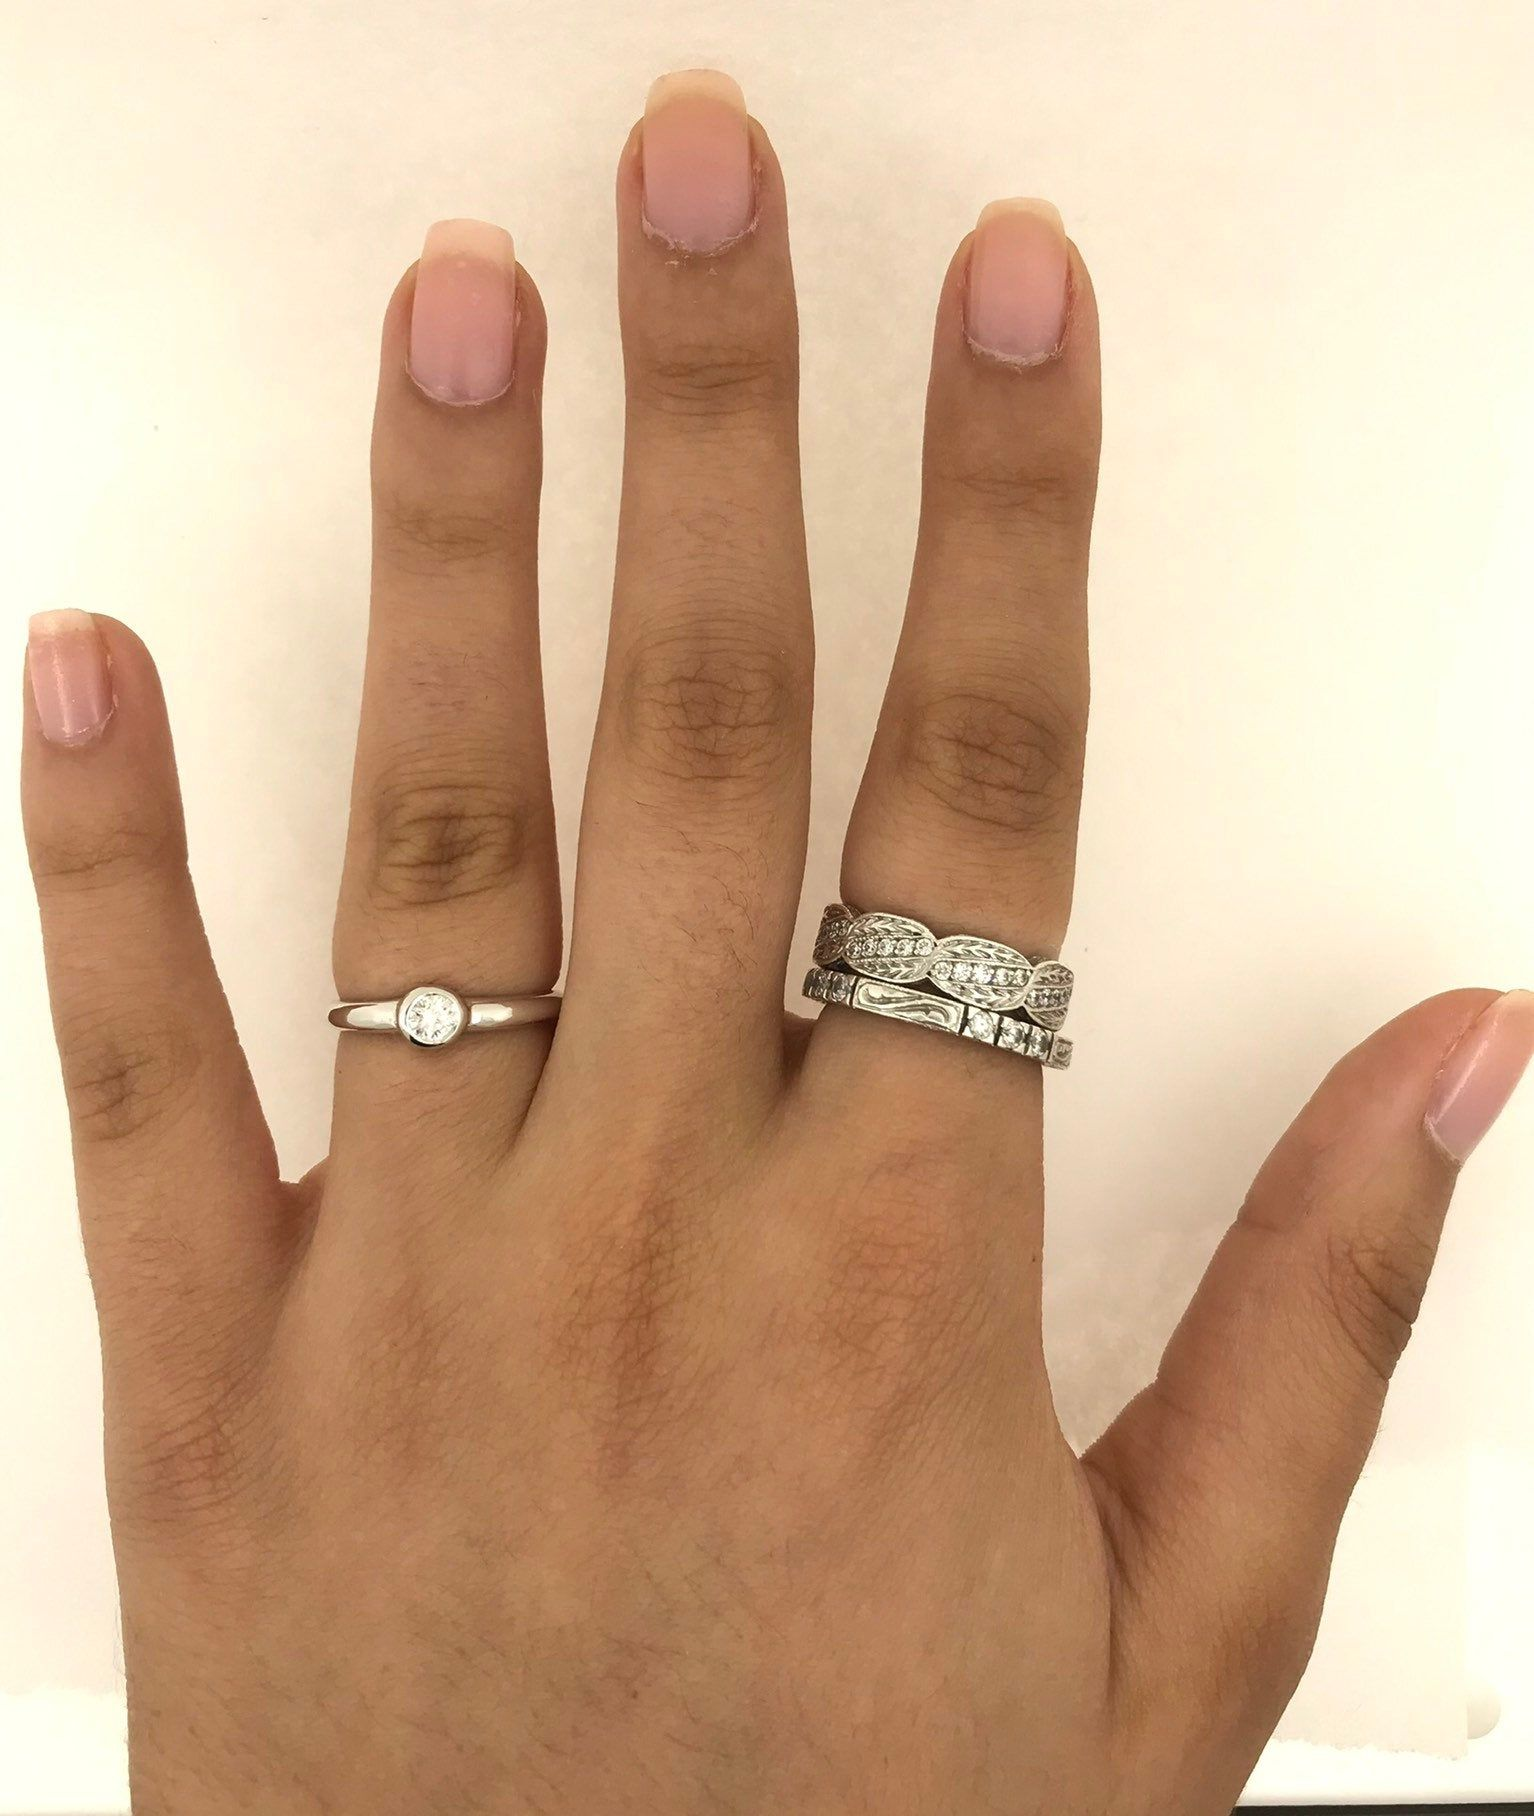 Simple free shape 0,25 carats diamond in 18 karat white gold stackable and solo ring  #jewelry #oneofkind #specialorder #customize #honest #integrity #diamond #gold #rings #weddingband #anniversary #finejewelry #salknight